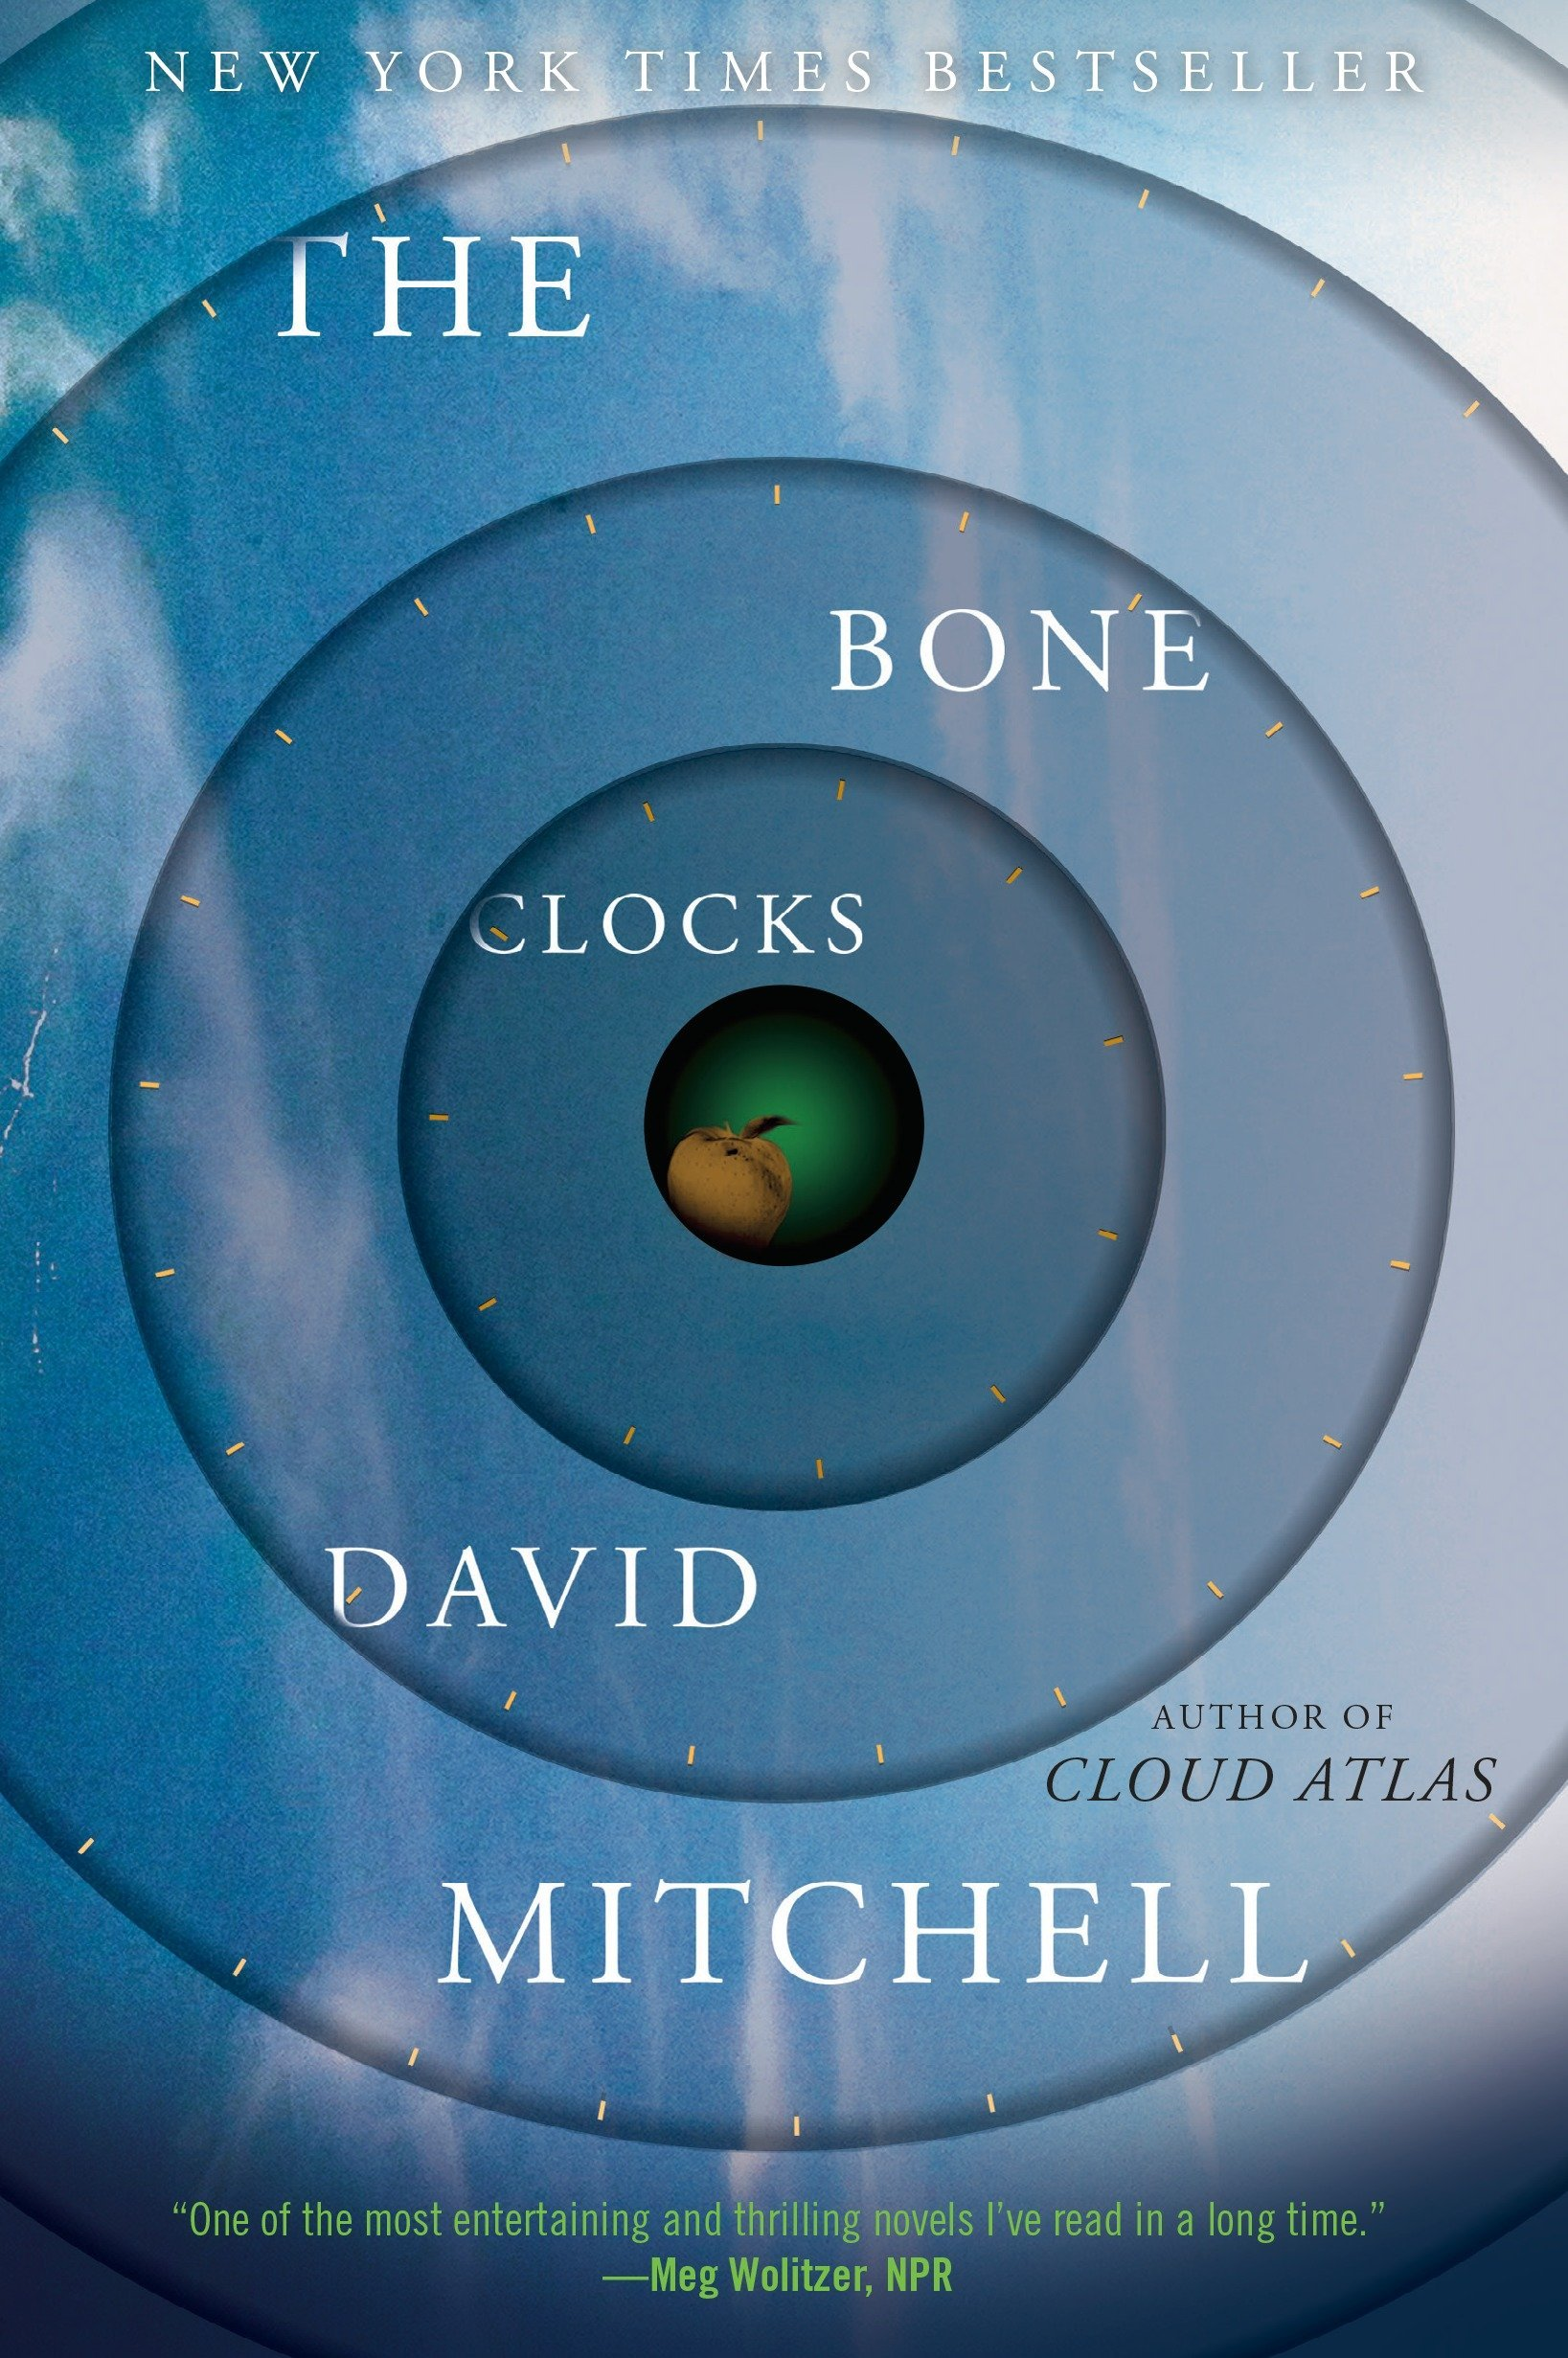 Amazon.com: The Bone Clocks: A Novel (8601422214666): Mitchell ...